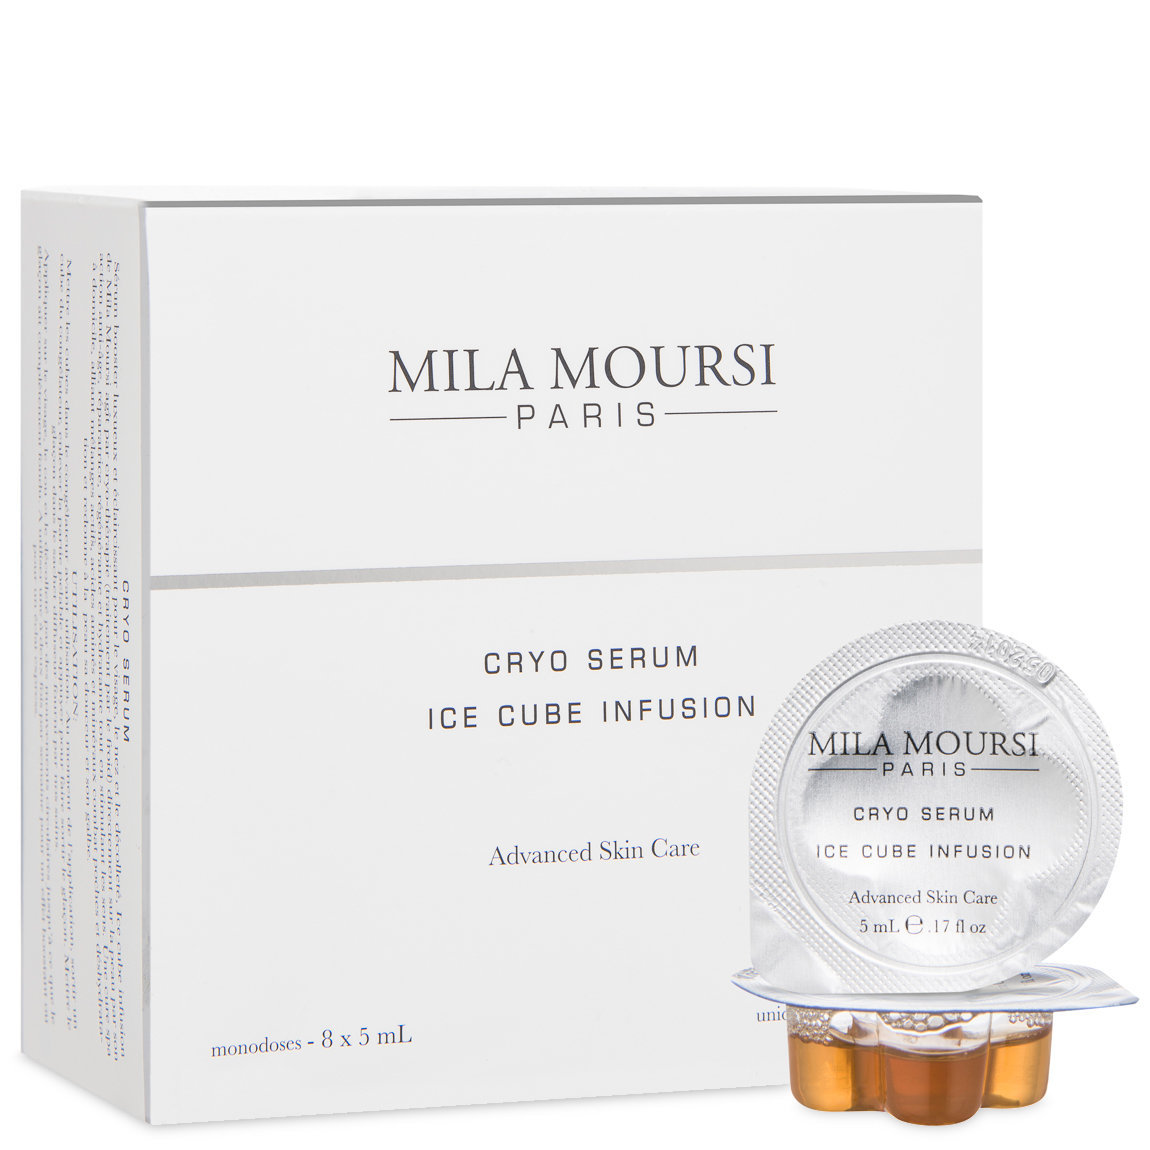 Mila Moursi Cryo Serum Ice Cube Infusion alternative view 1 - product swatch.